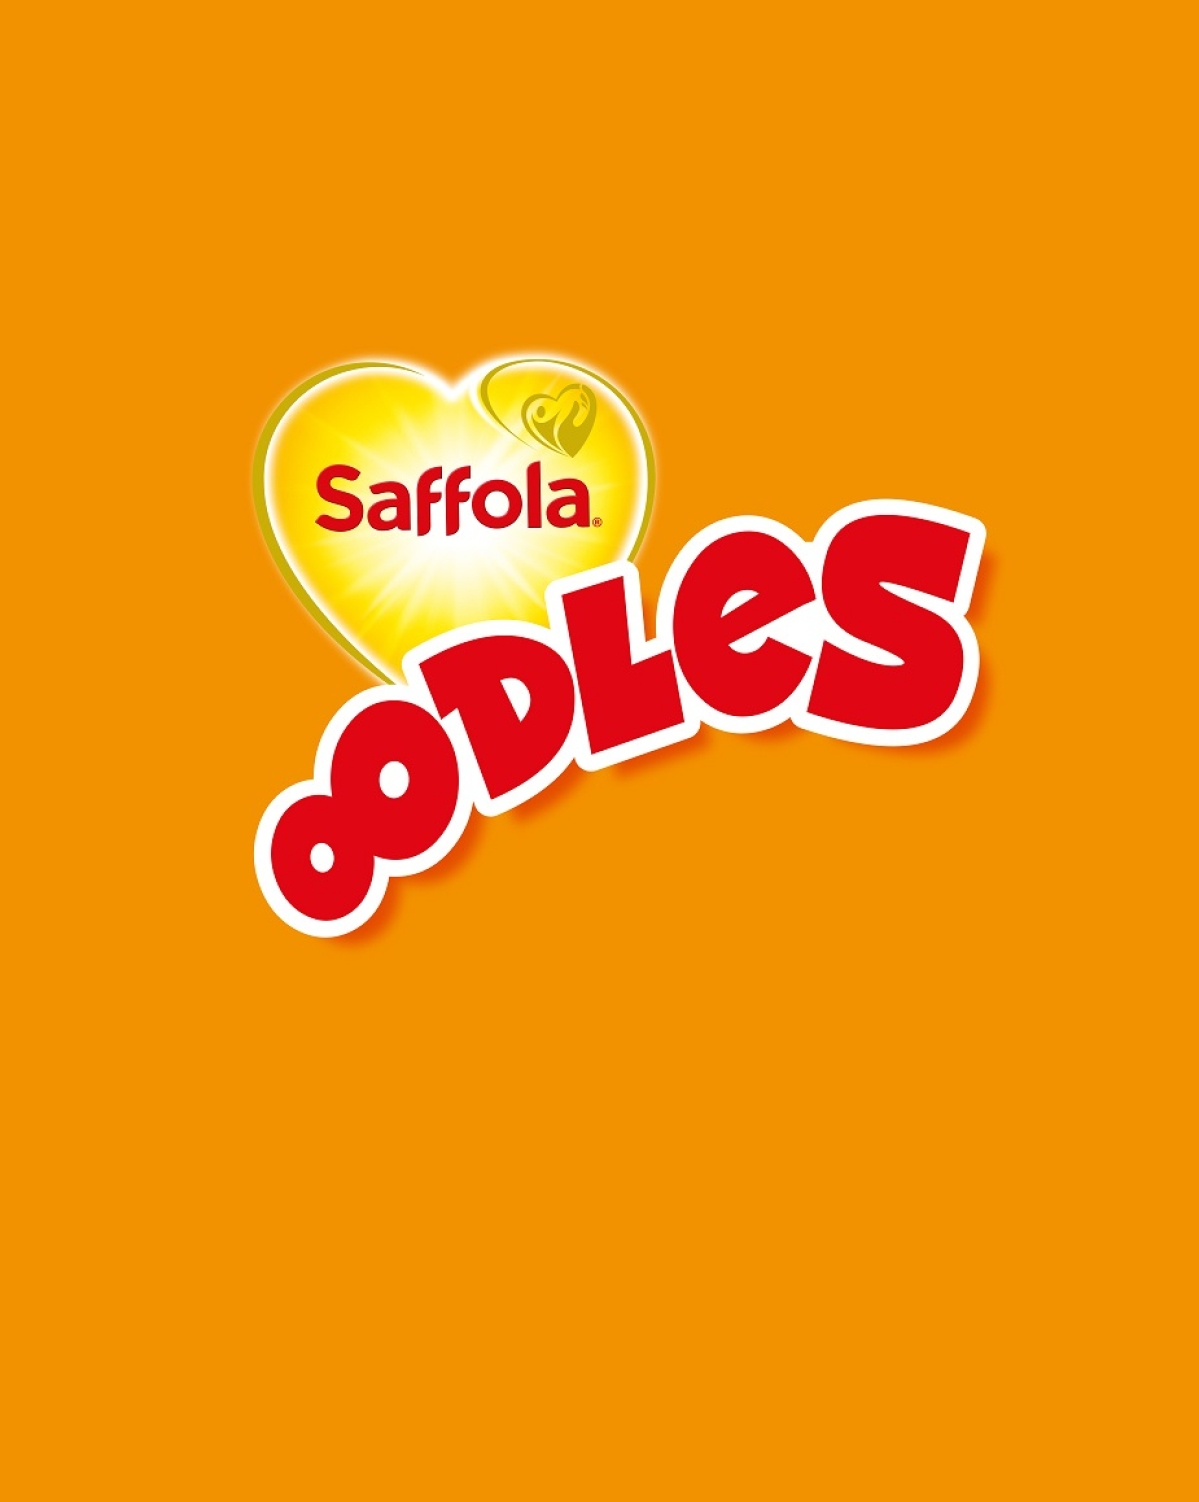 Marico enters instant noodle category with 'Saffola Oodles'